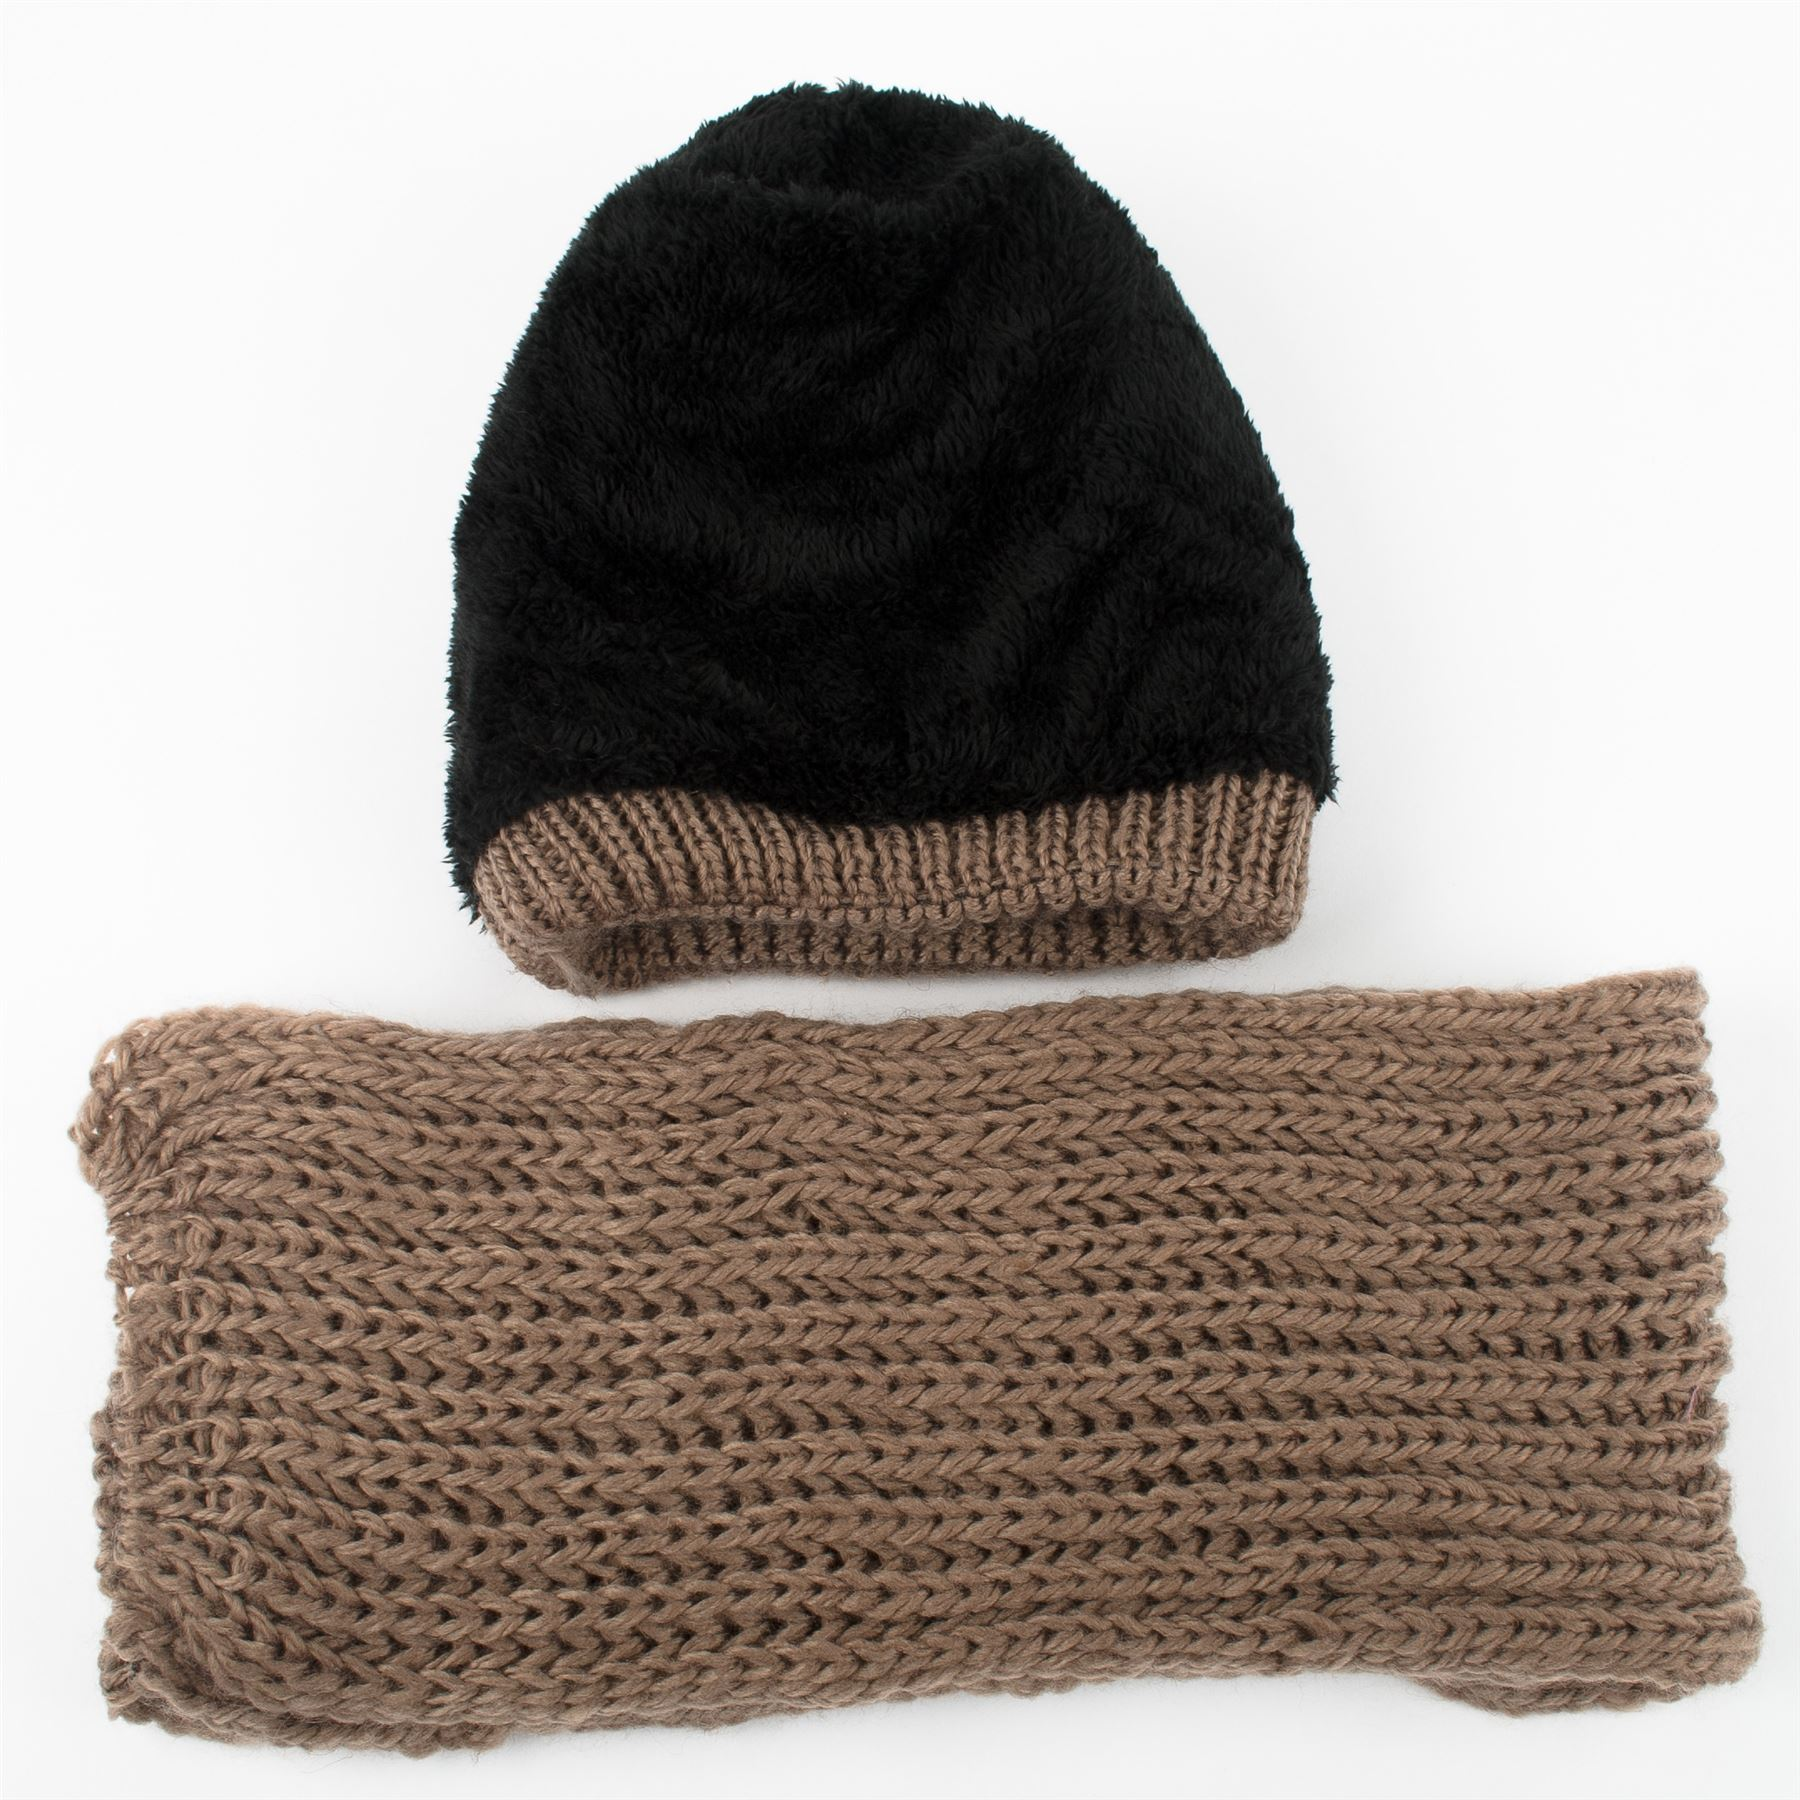 269b4287460 Winter Chunky Knit Beanie Hat with Fleece Lining   Scarf Set with ...